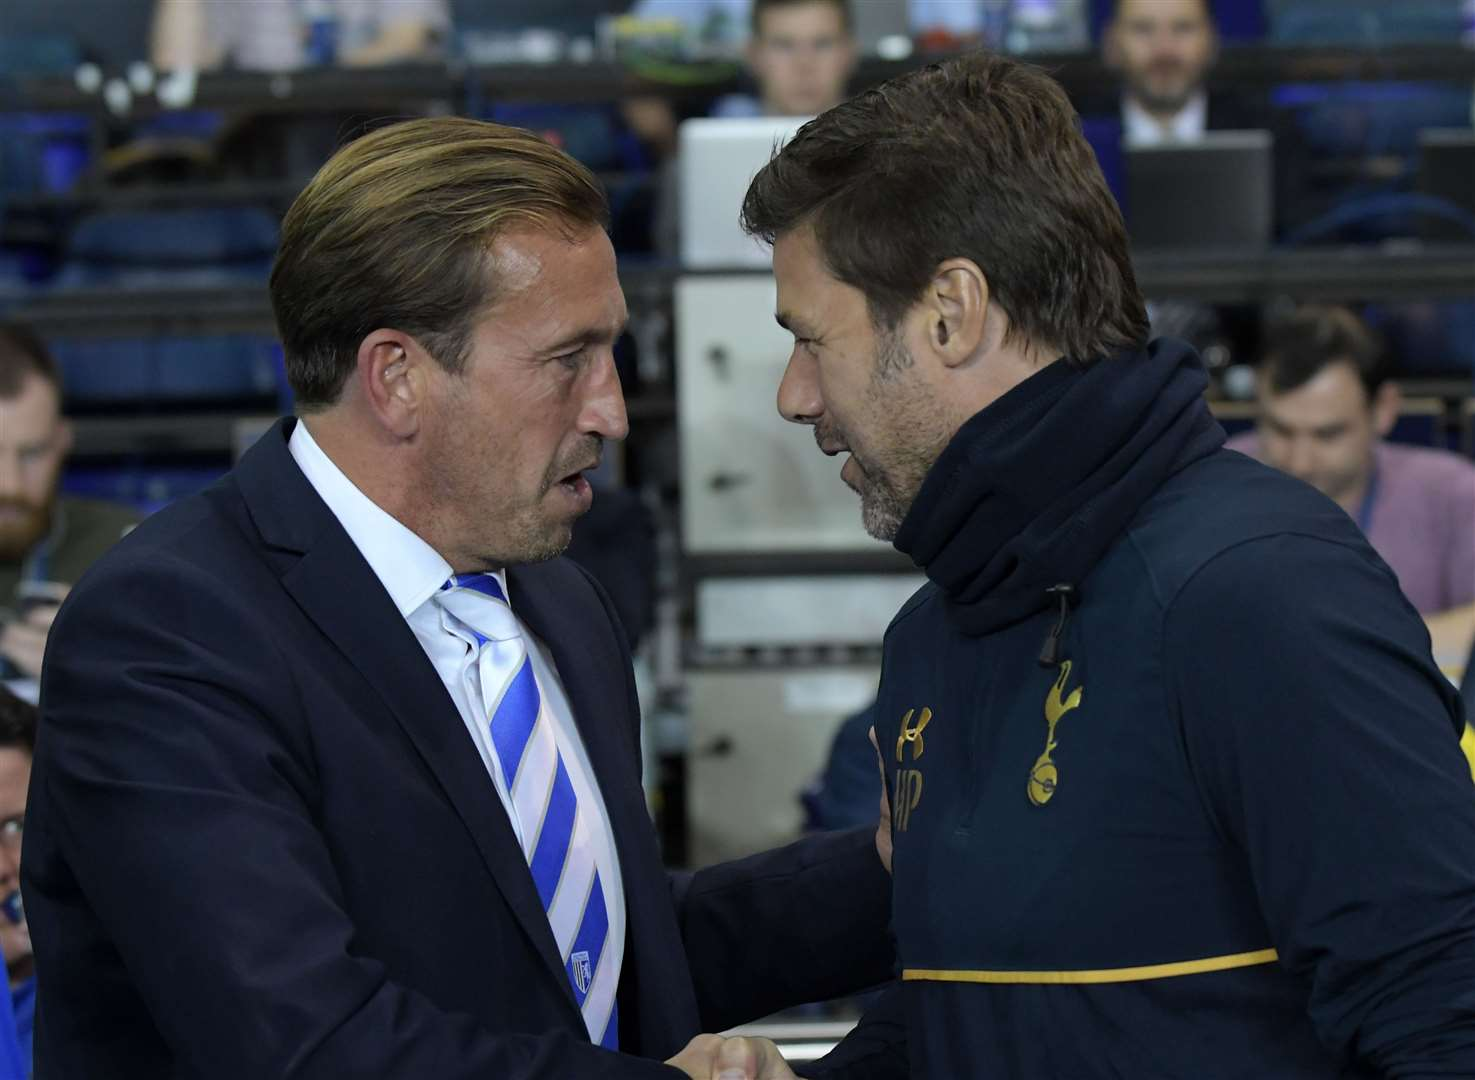 Justin Edinburgh shakes hands with Spurs manager Mauricio Pochettino back in 2016 when the Gills took on Tottenham Hotspur in the EFL Cup at White Hart Lane Picture: Barry Goodwin